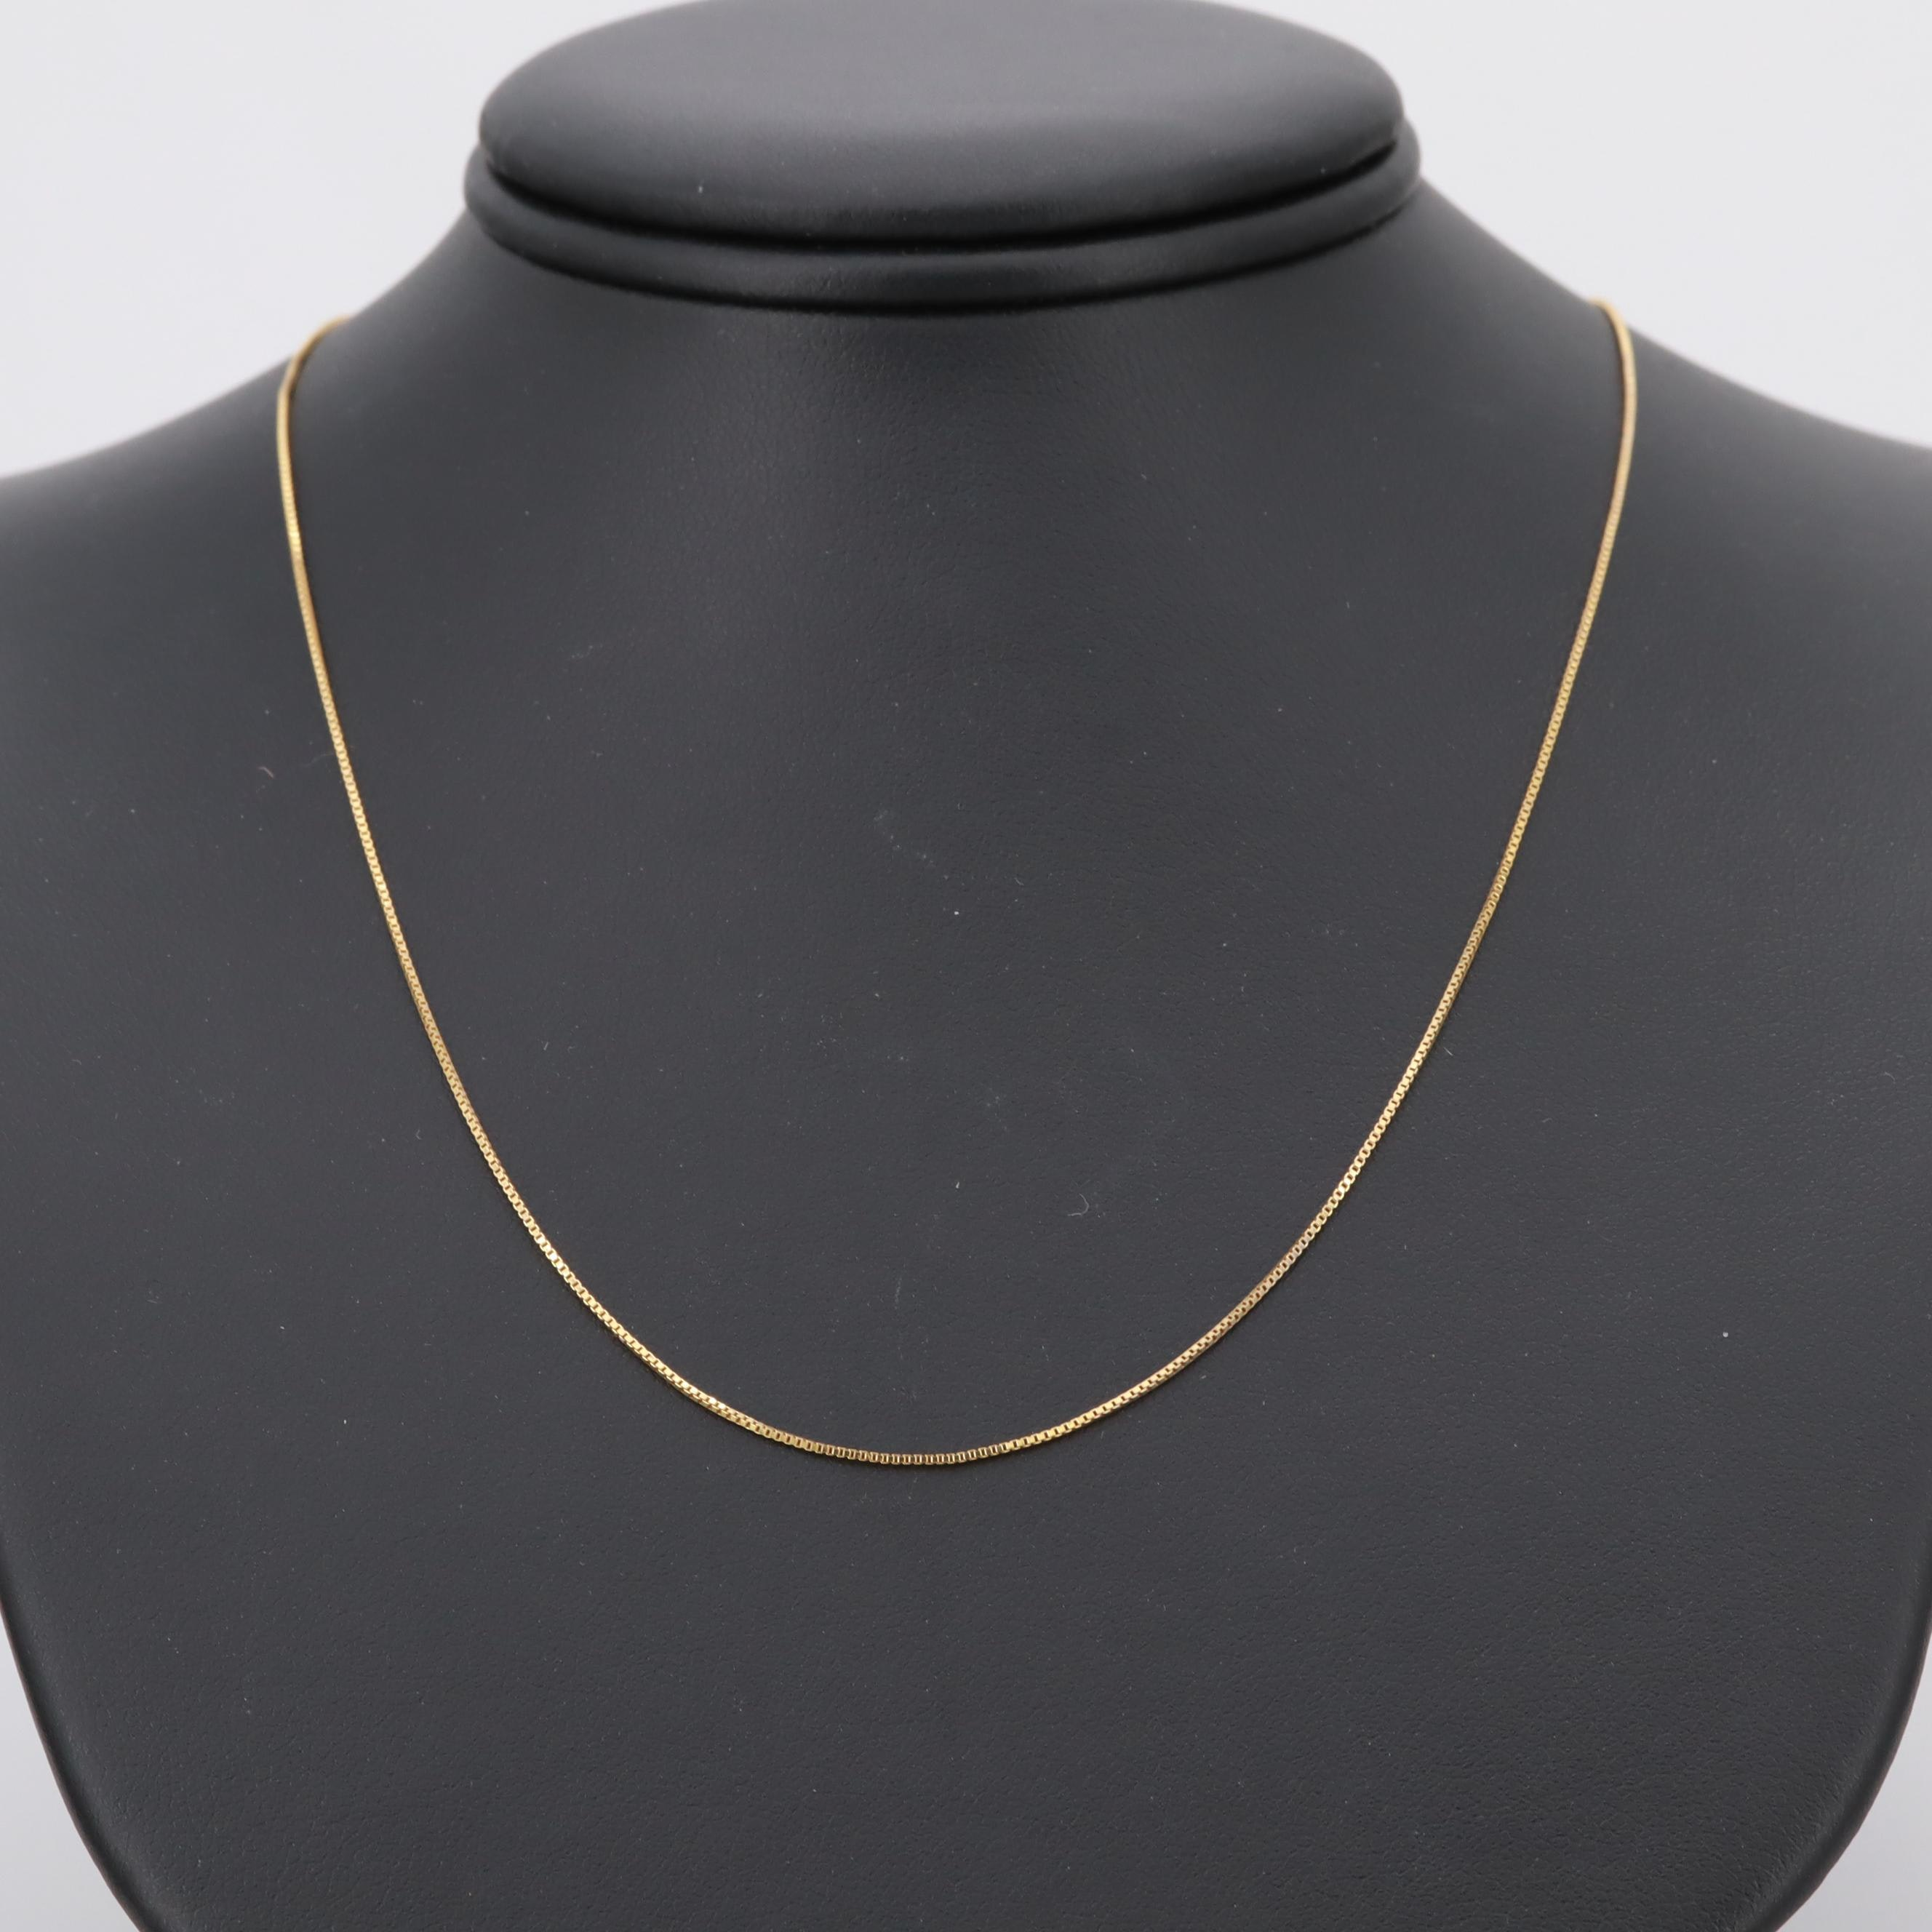 10K Yellow Gold Box Chain Necklace